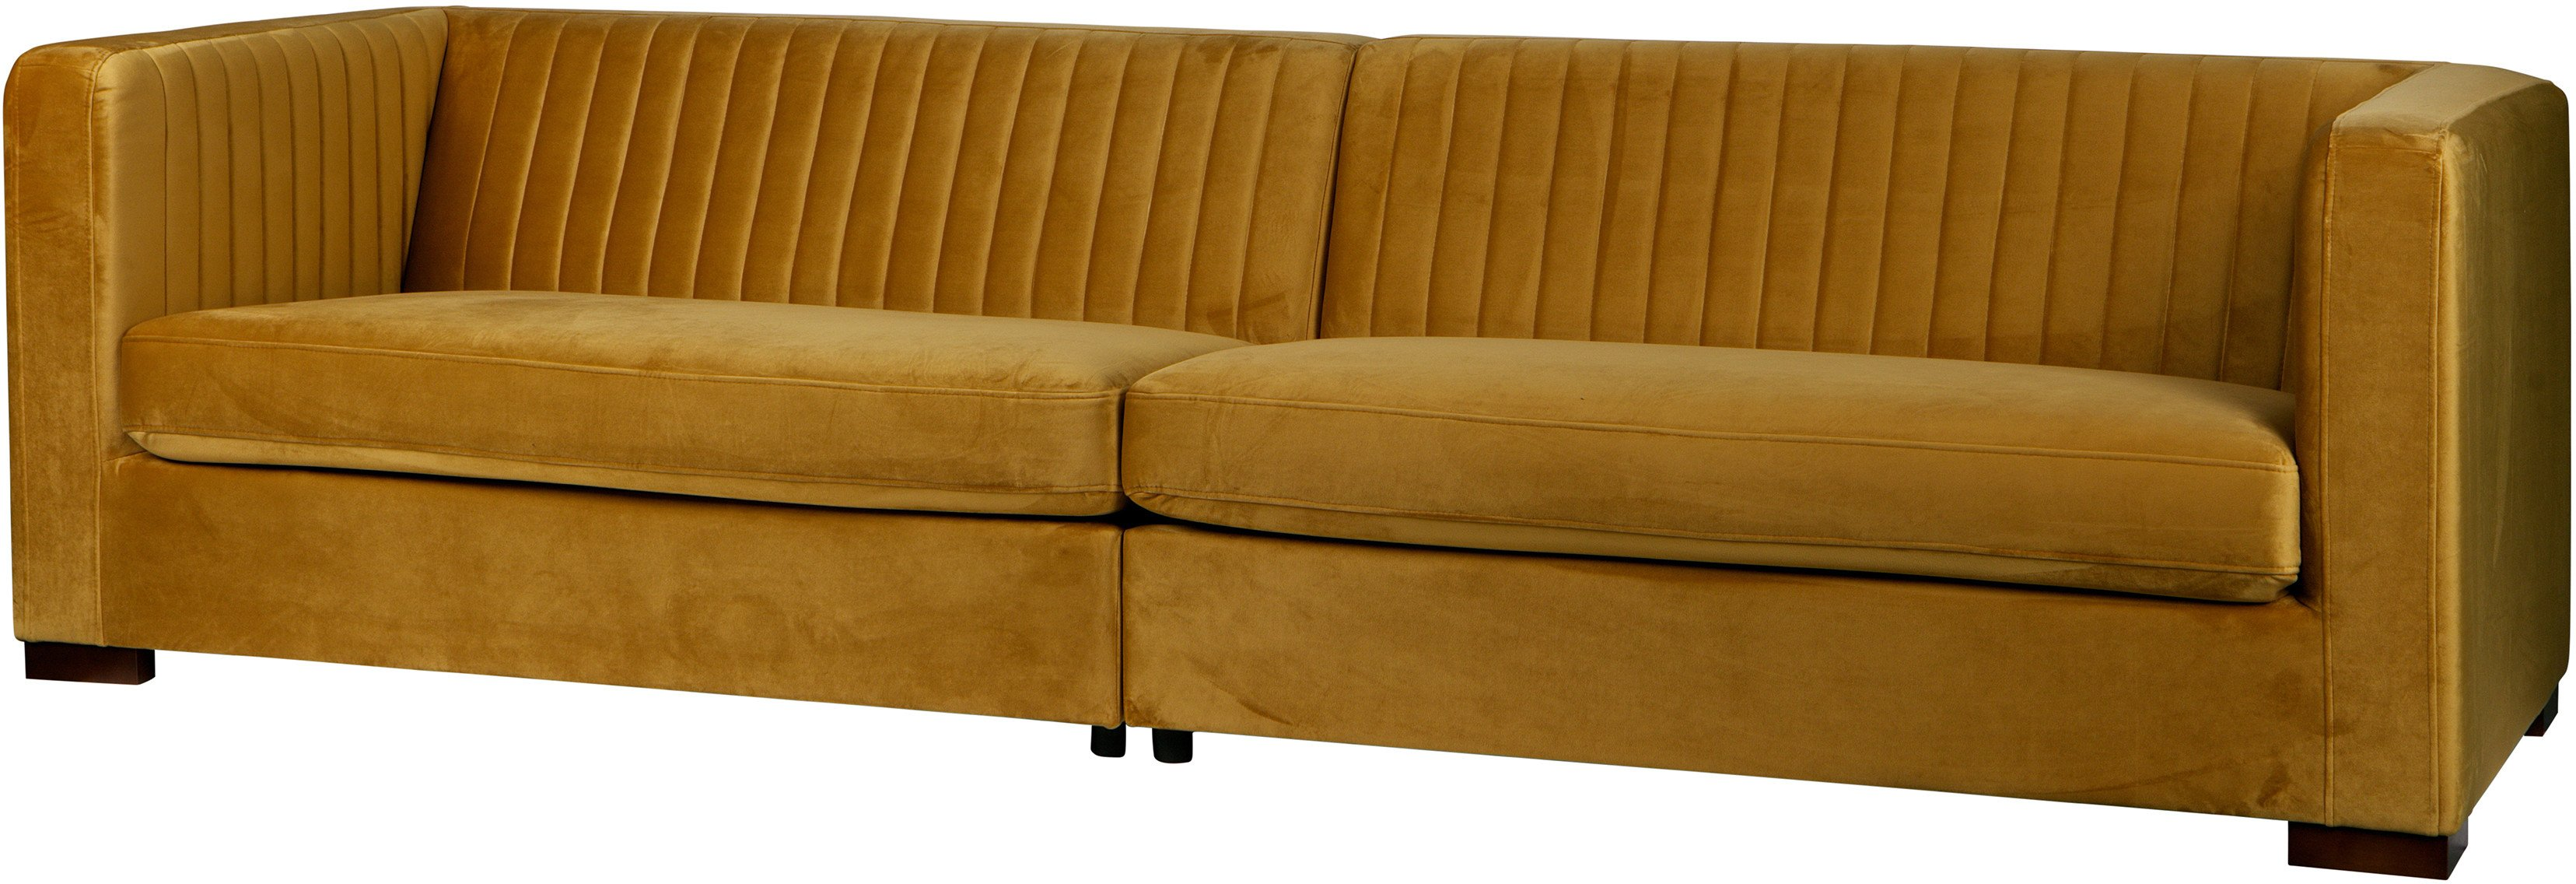 Sofa Nouveau musztardowa XL, Be Pure